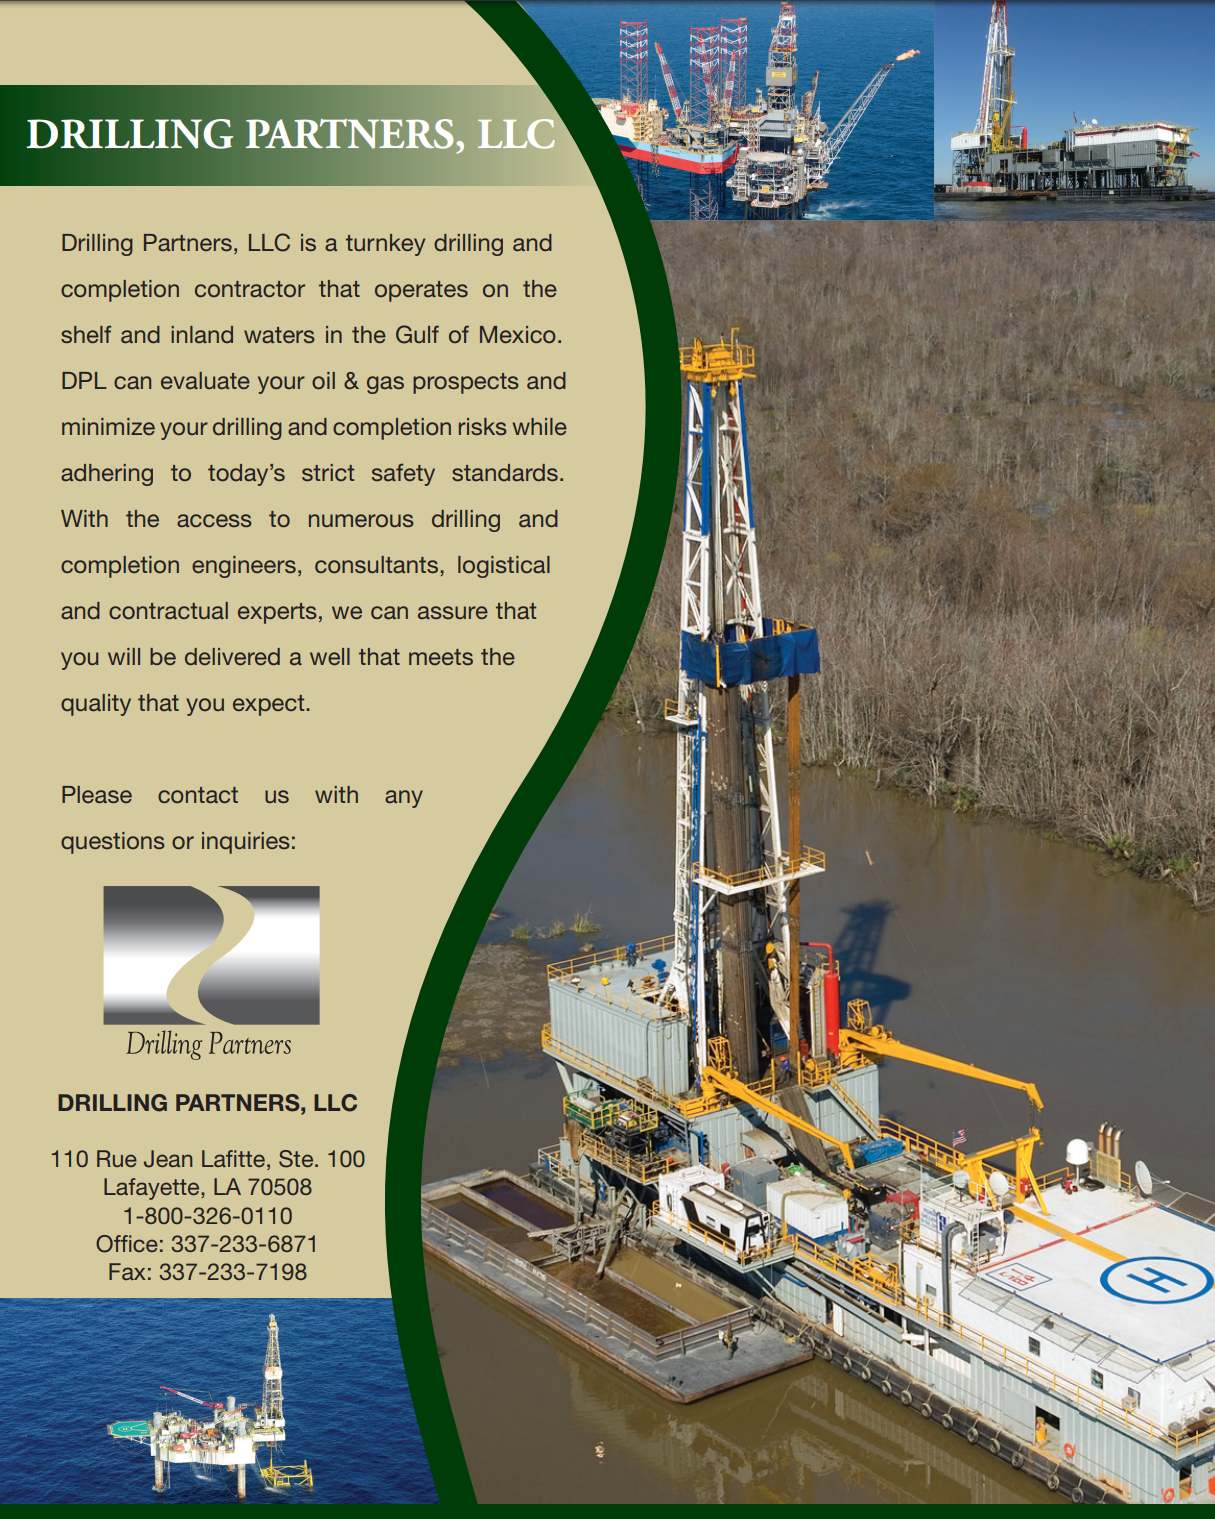 Drilling Partners Brochure (png)